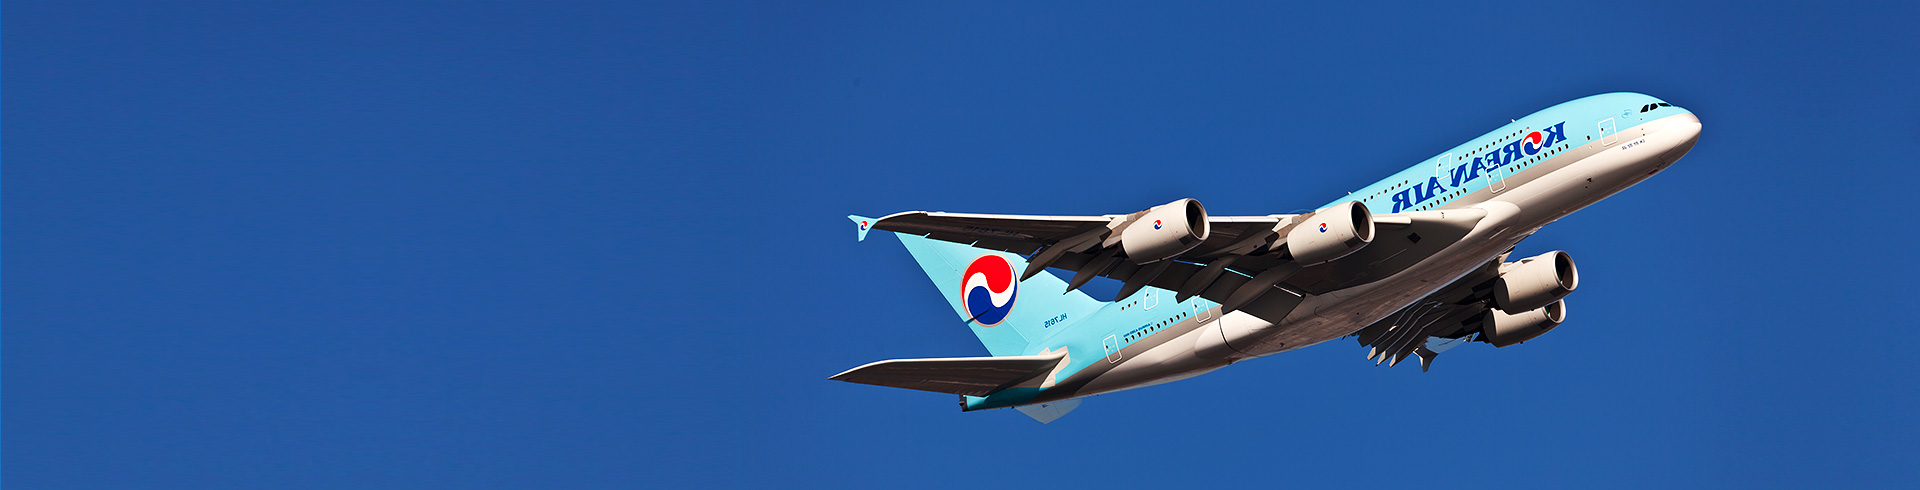 first class tickets by korean air - IFlyFirstClass